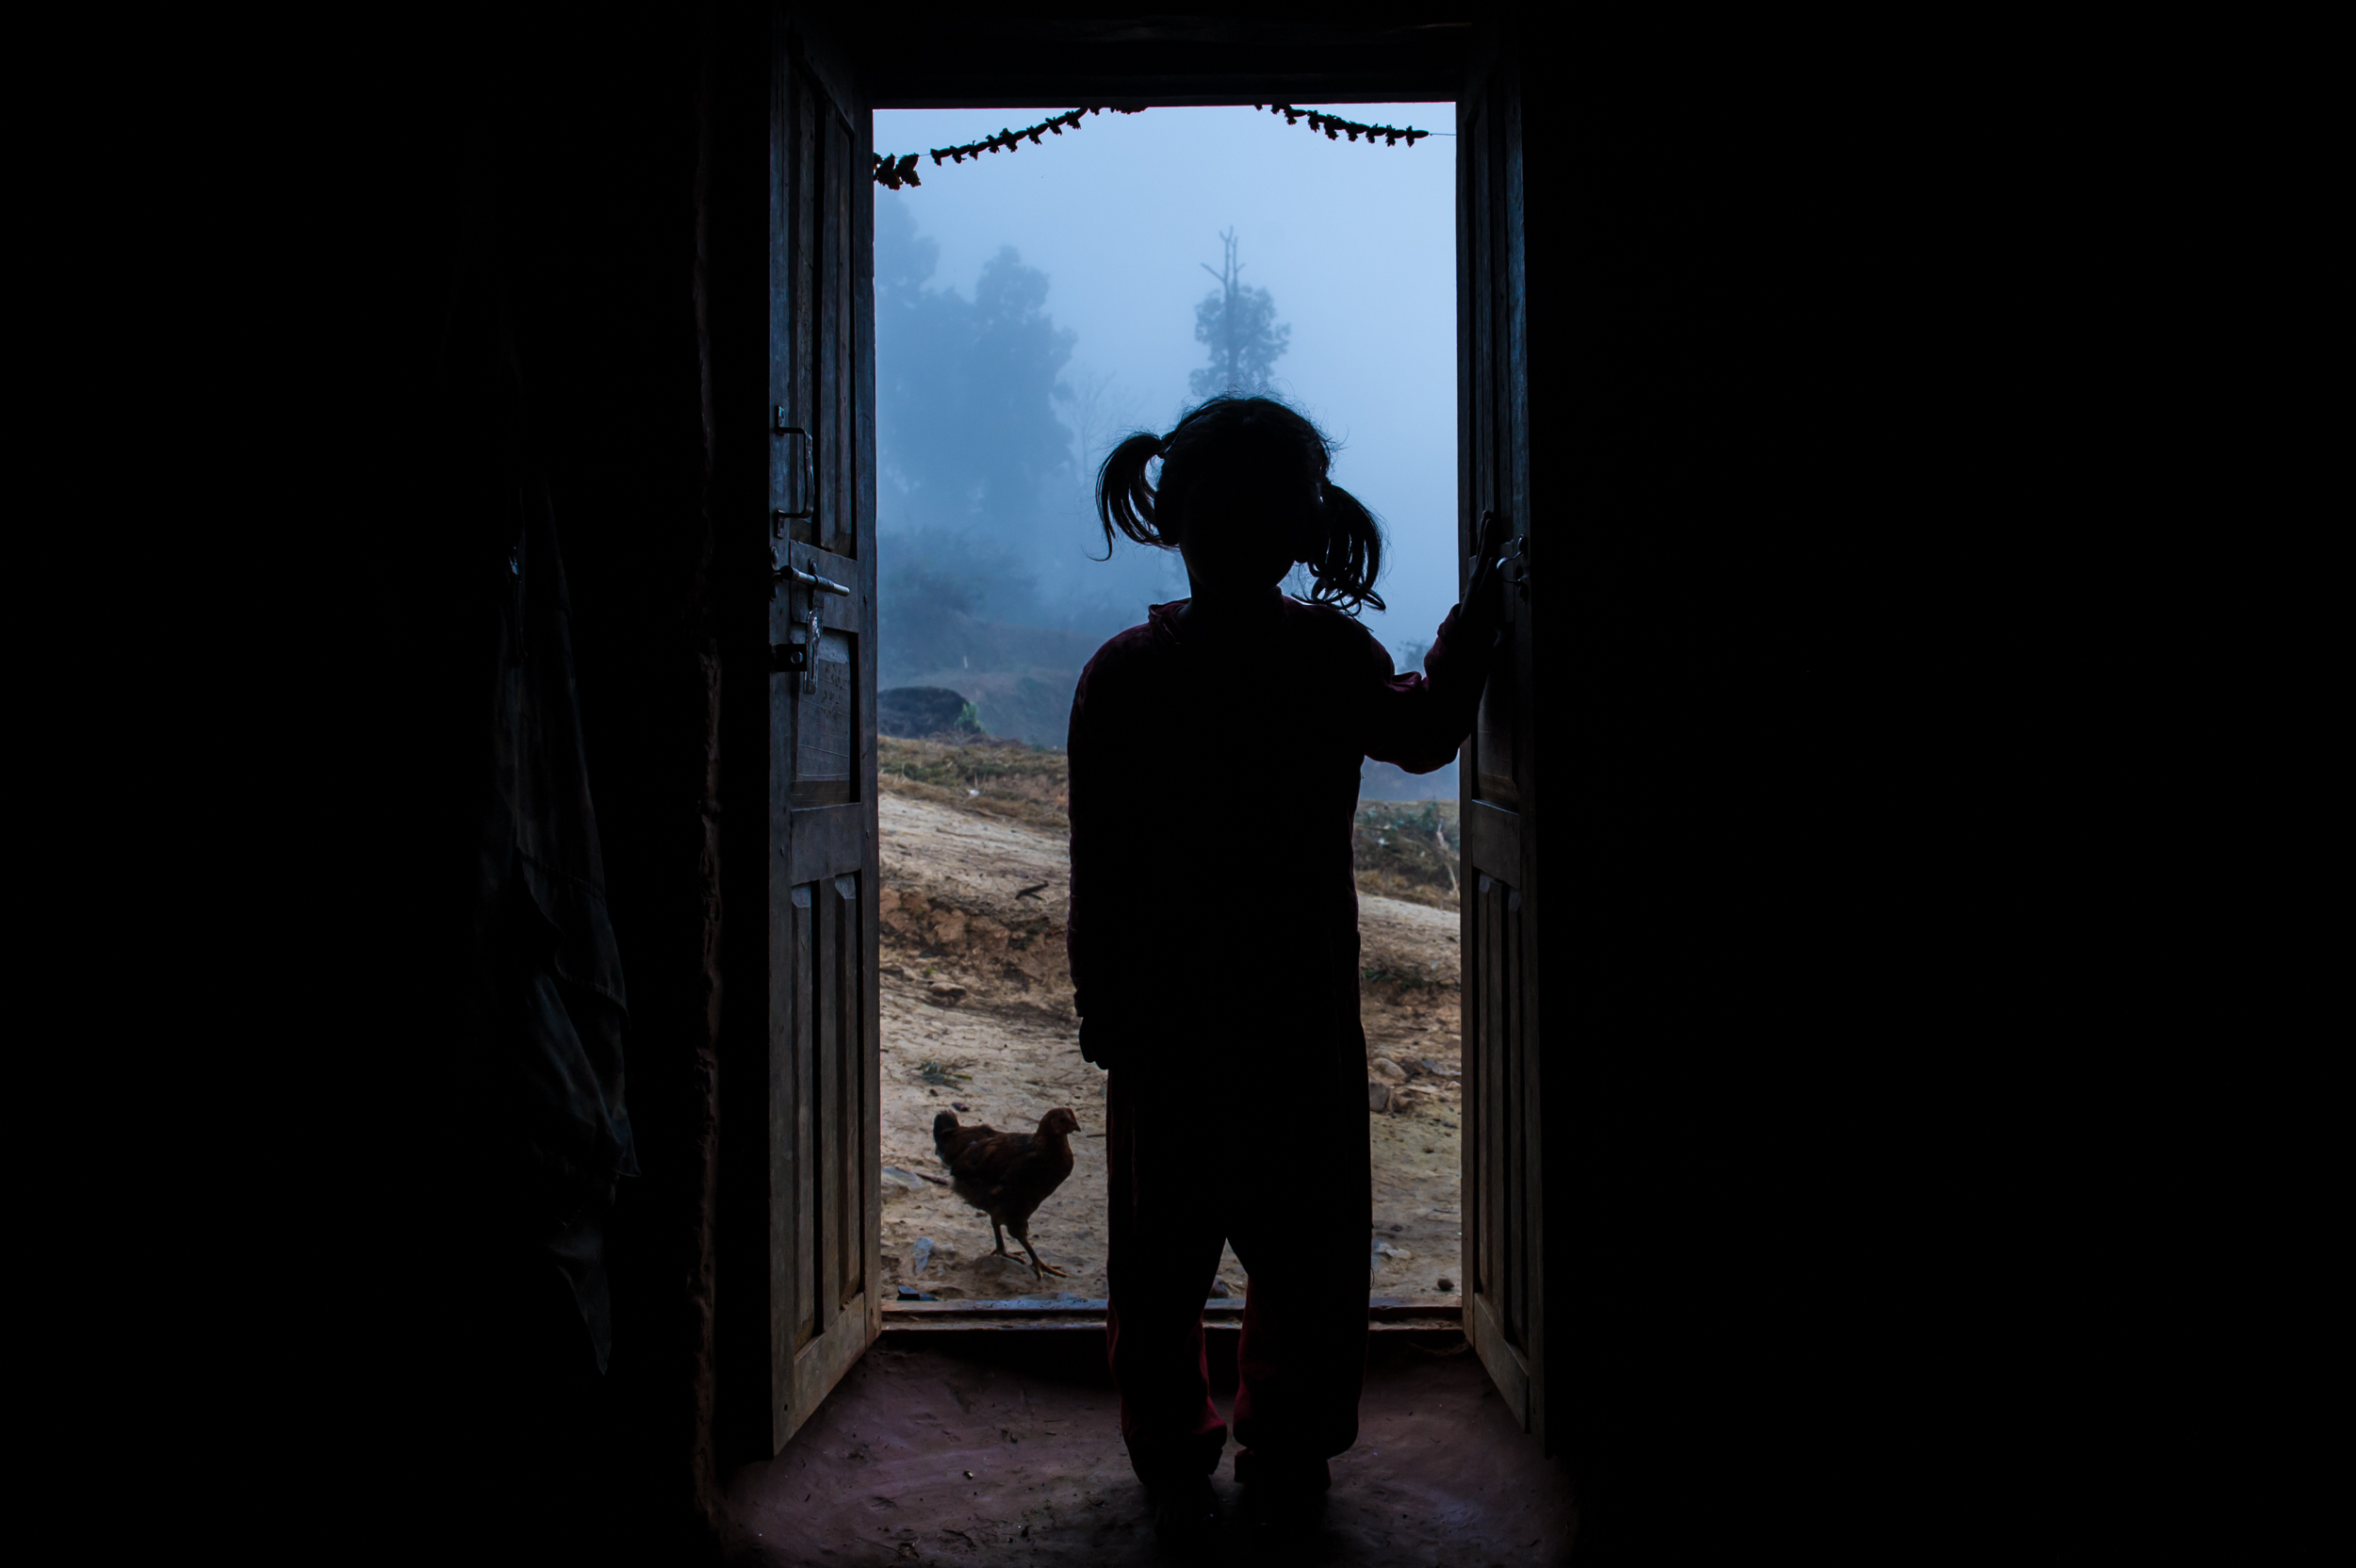 Rasu, who is in first grade at Shringery Secondary School, looks out the open front door. Despite the sun barely being up, her mother has already left to work on a construction site.